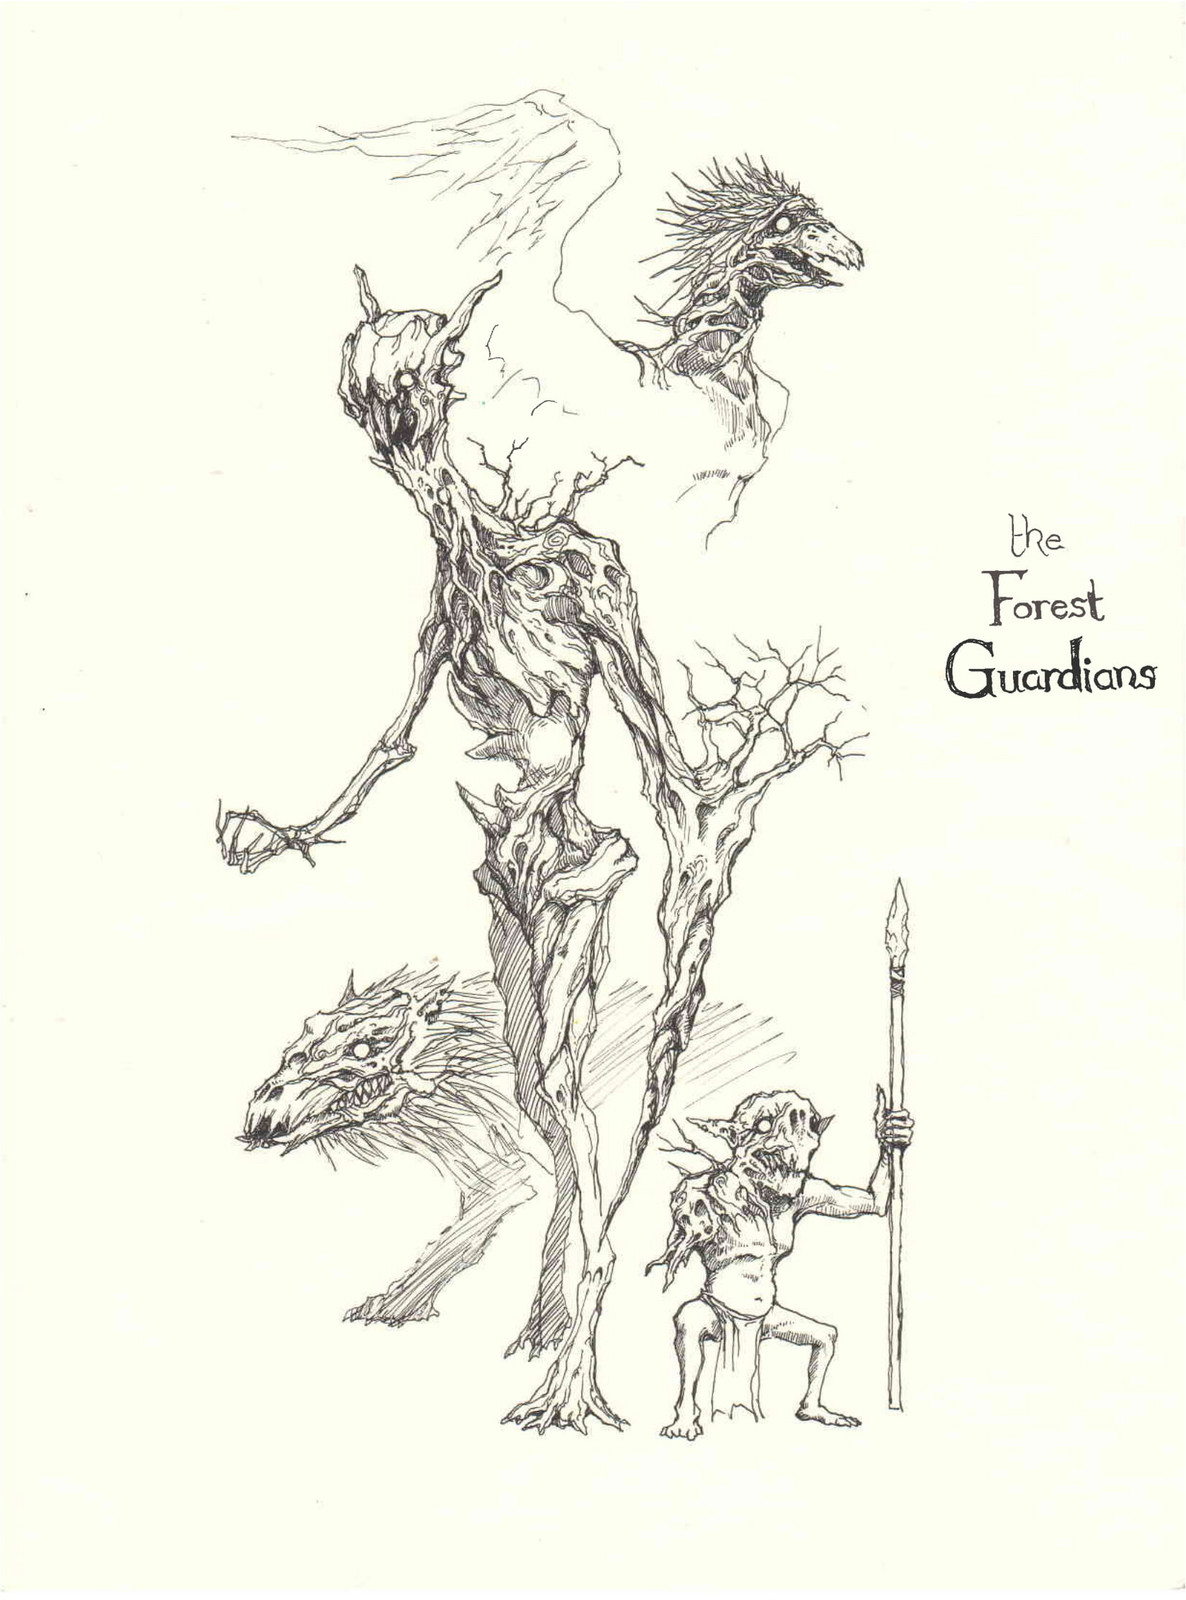 Lee Dabeen. Concept Art – The Tree Guardians. 2018. Pen on paper, 282 x 210 mm.